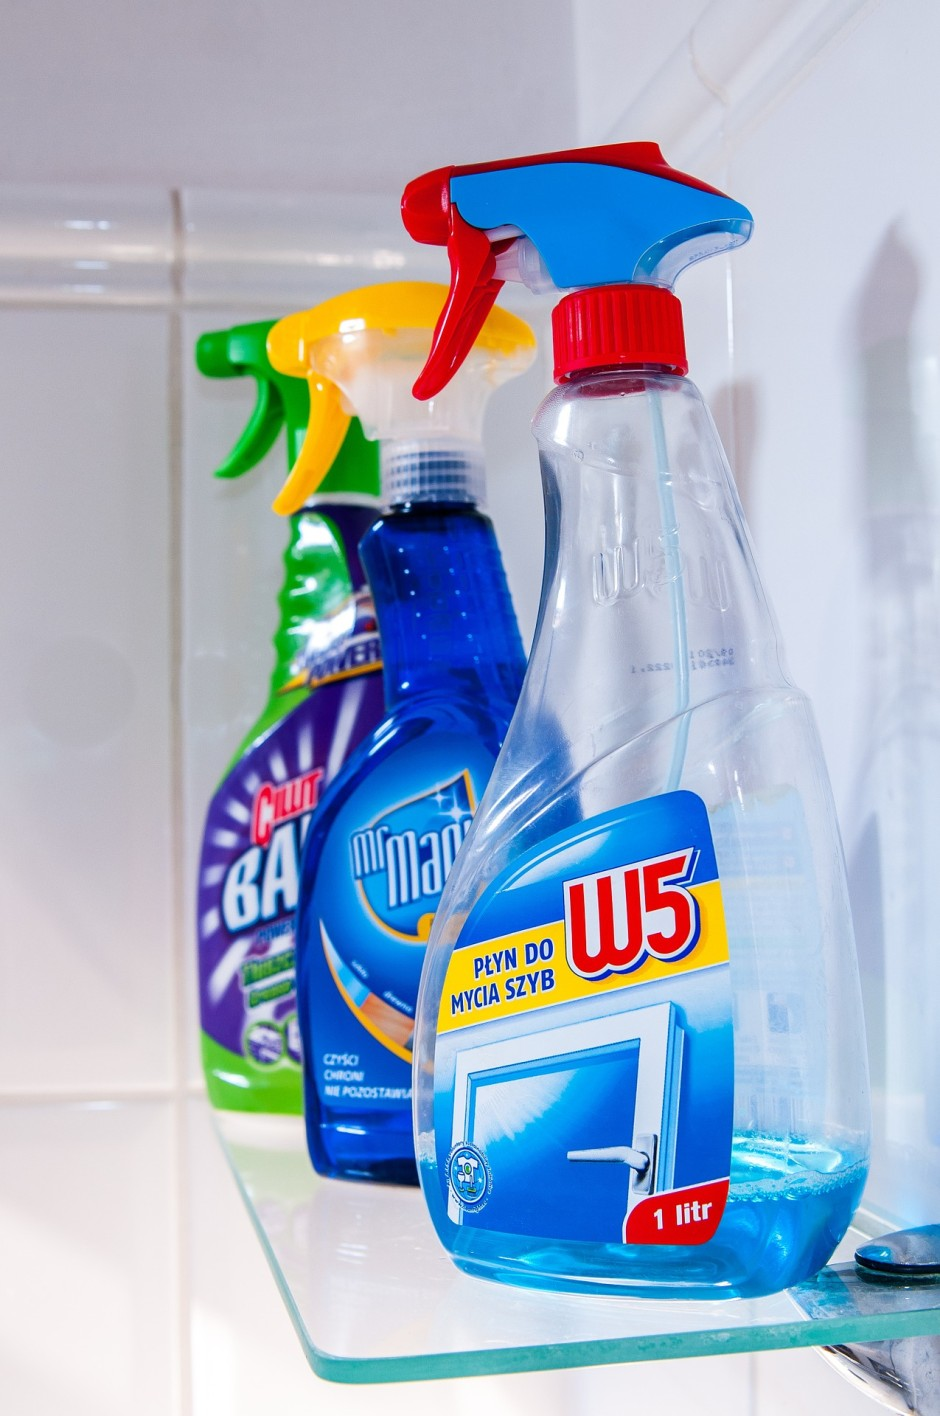 Why we should avoid chemical cleaning products | Wooden Blinds Direct